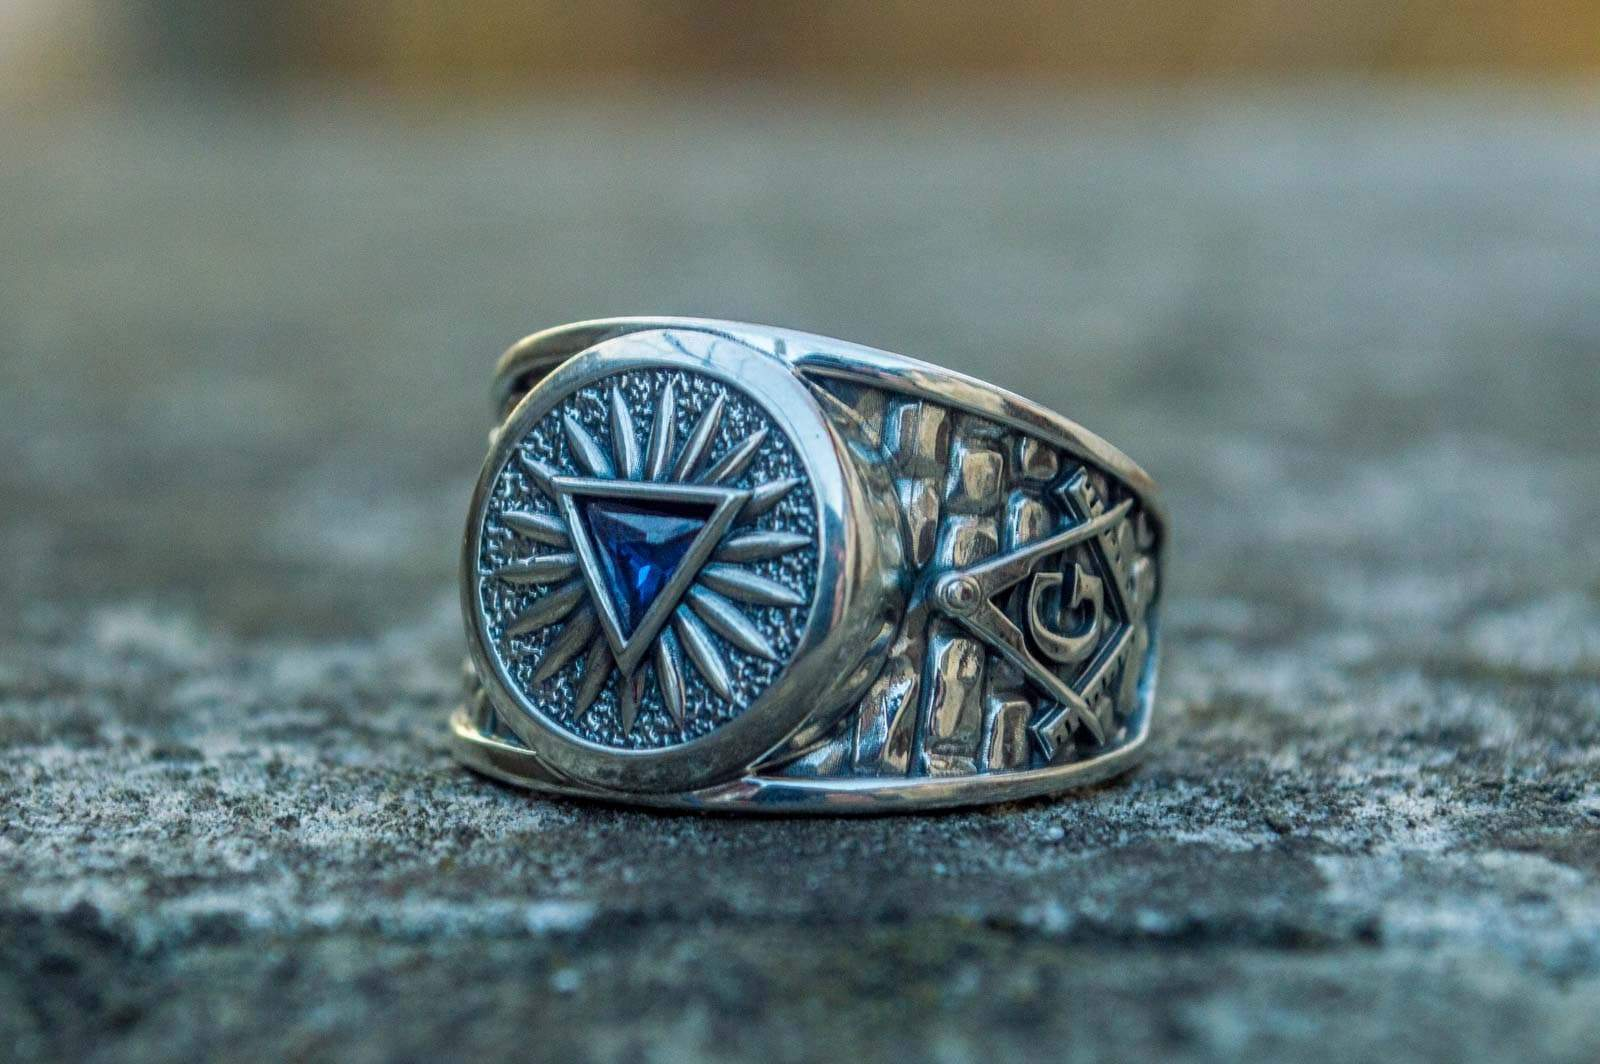 Rings Masonic Cubic Zirconia Eye of Providence Sterling Silver Ring Ancient Treasures Ancientreasures Viking Odin Thor Mjolnir Celtic Ancient Egypt Norse Norse Mythology